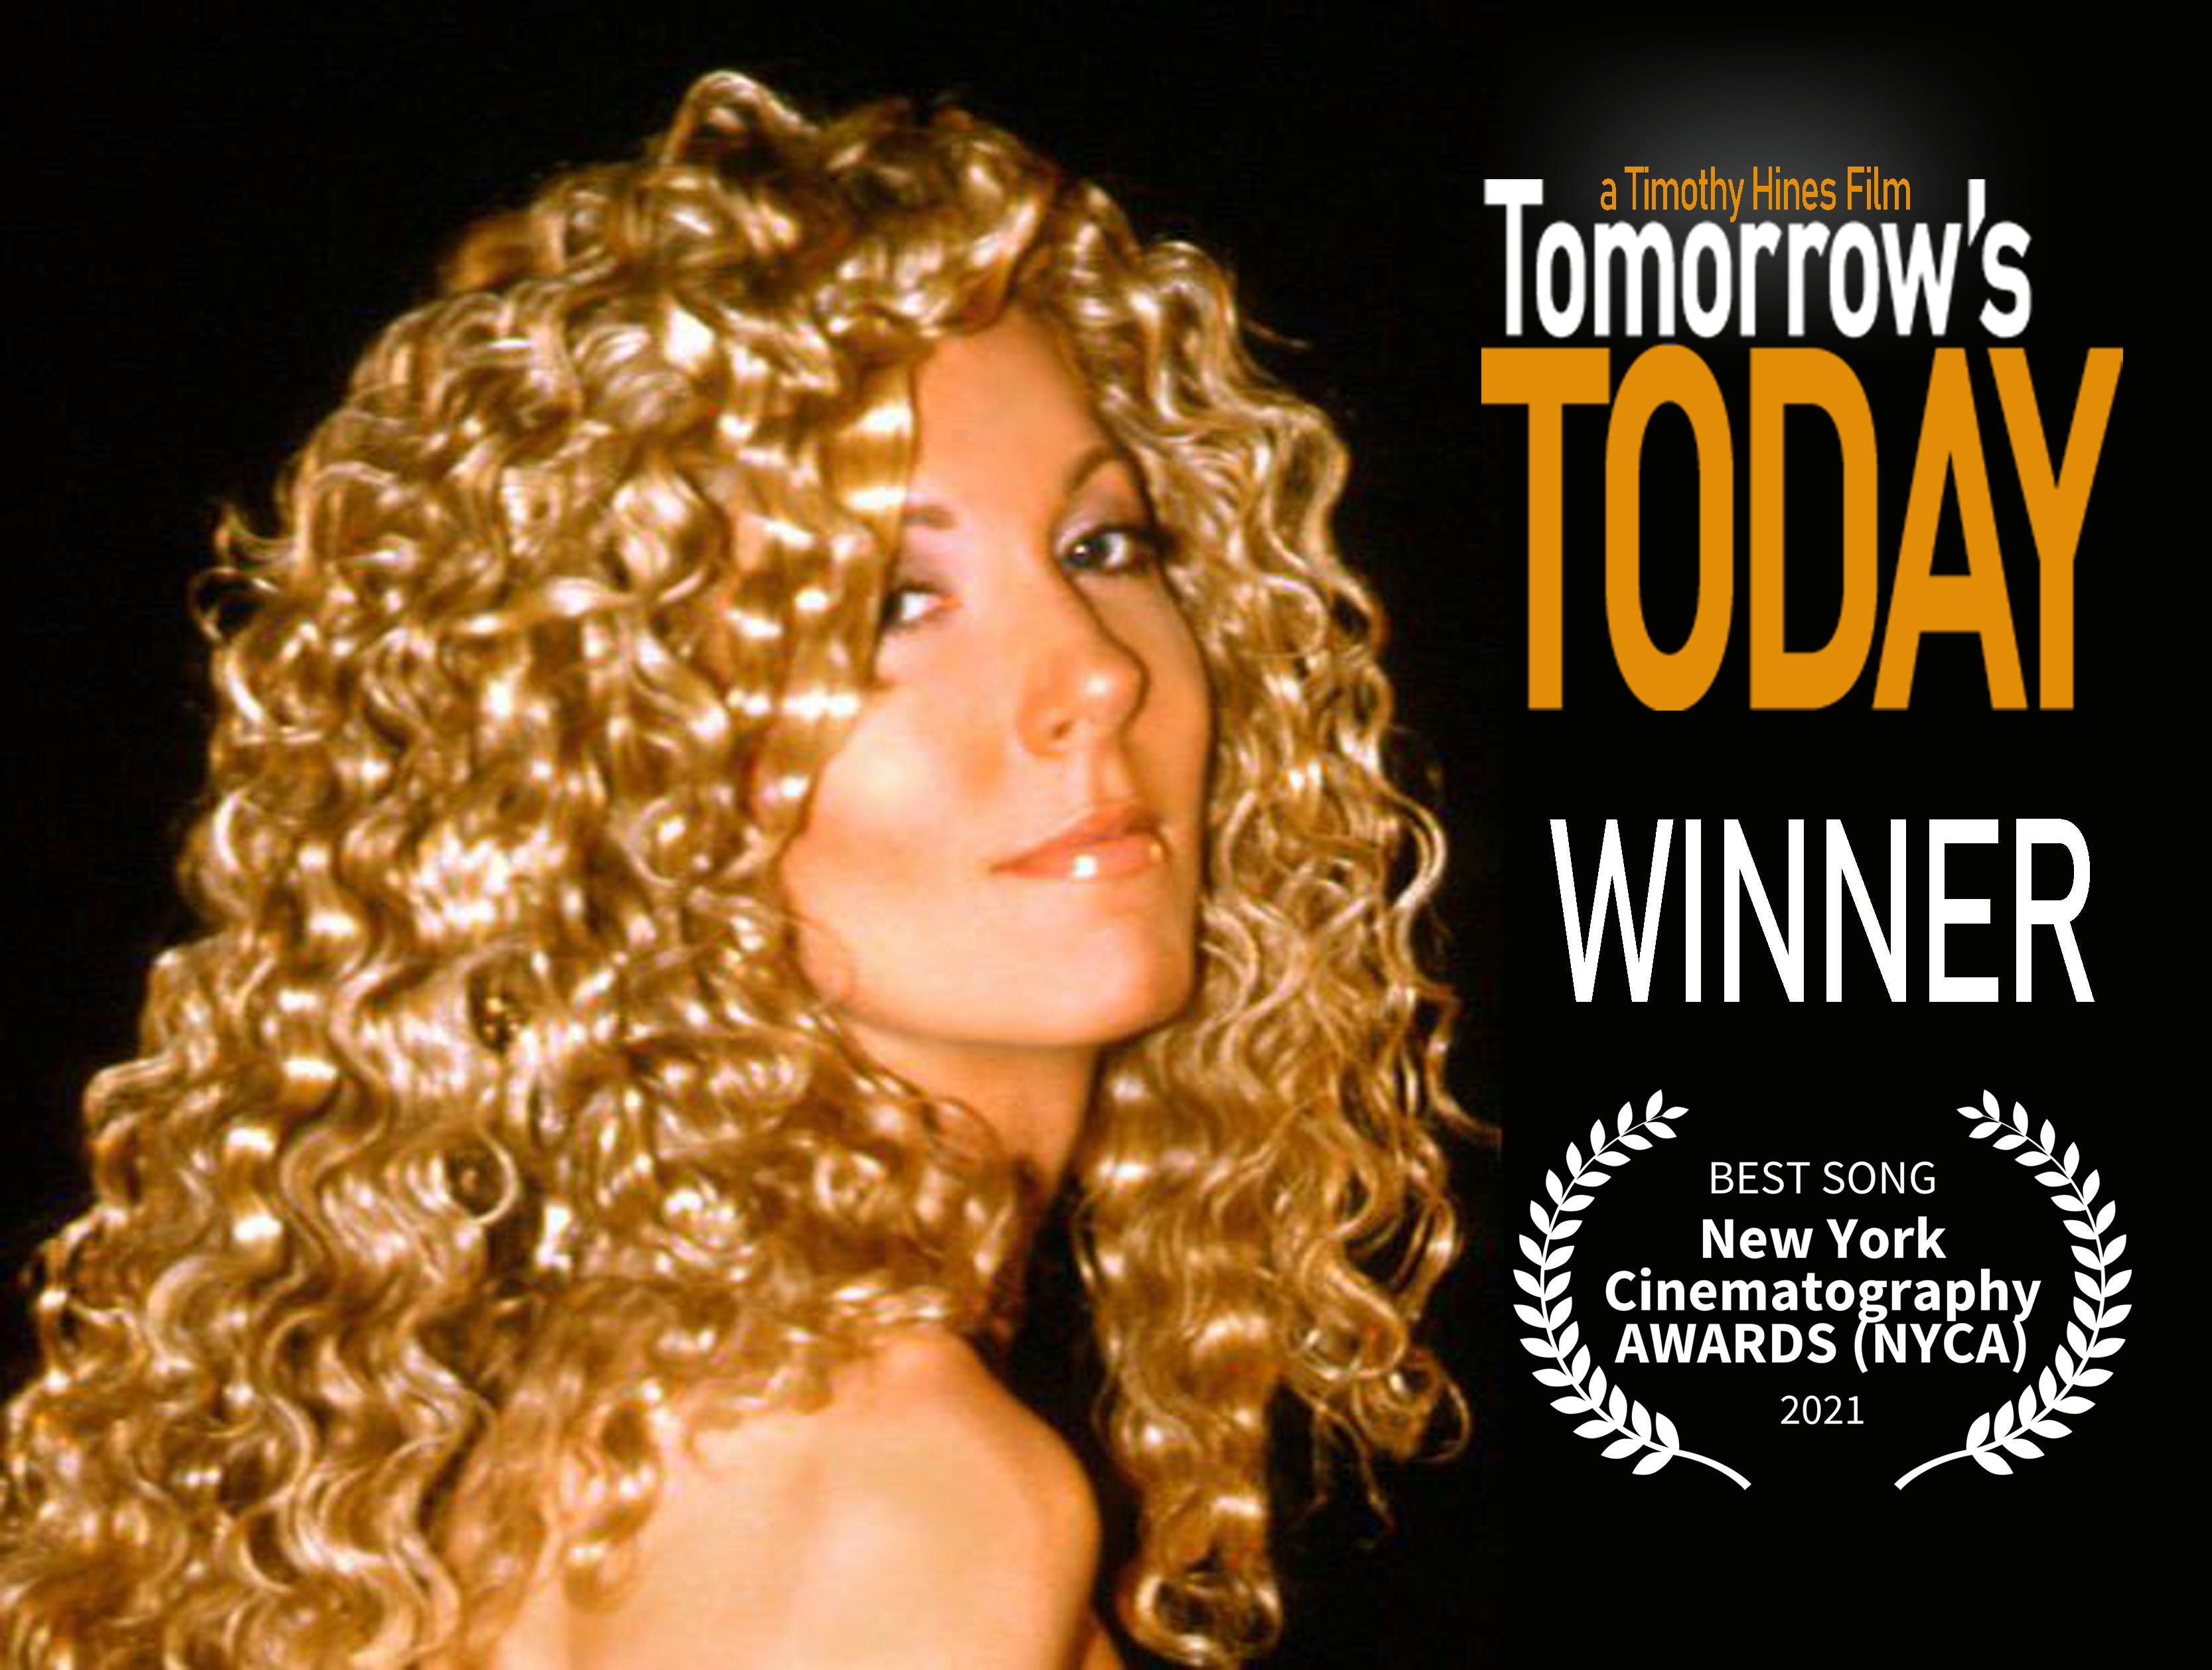 """Boston Conservatory at Berklee alumni Susan Goforth Wins Best Song at the New York Cinematography Awards with """"Tomorrow's Today"""""""